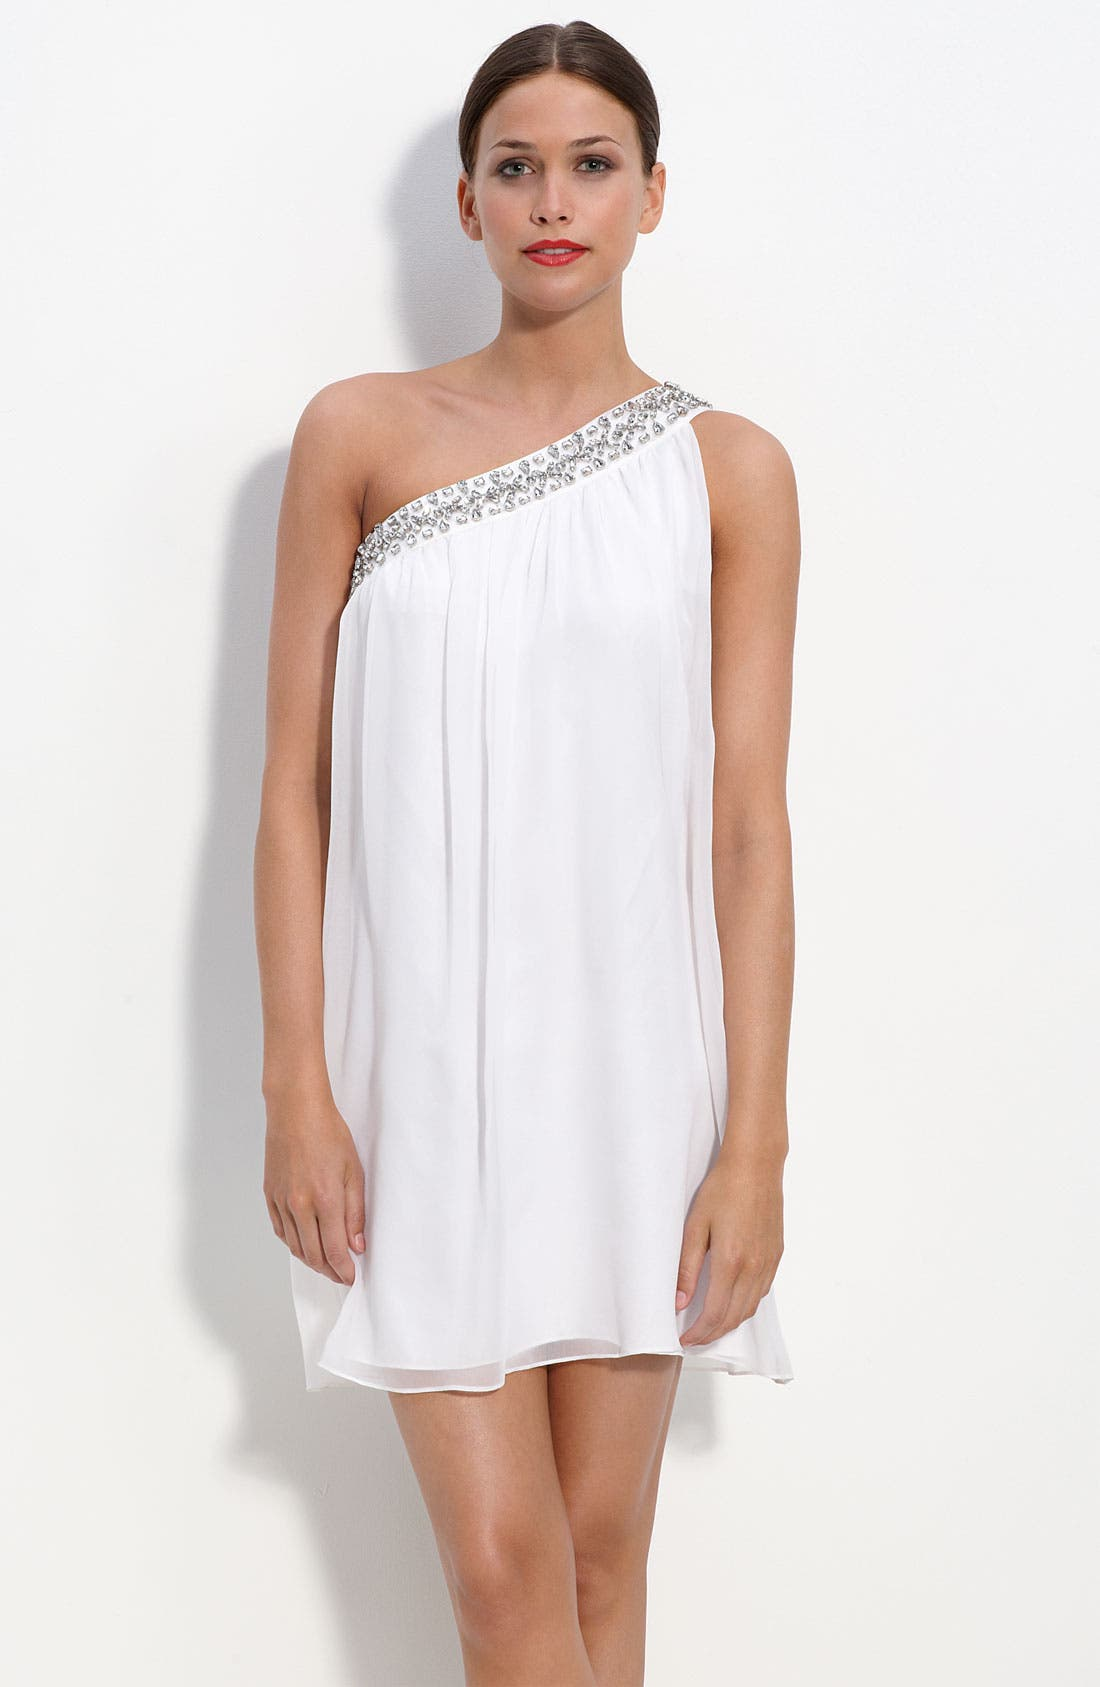 Main Image - Calvin Klein One Shoulder Chiffon Dress with Rhinestone Trim